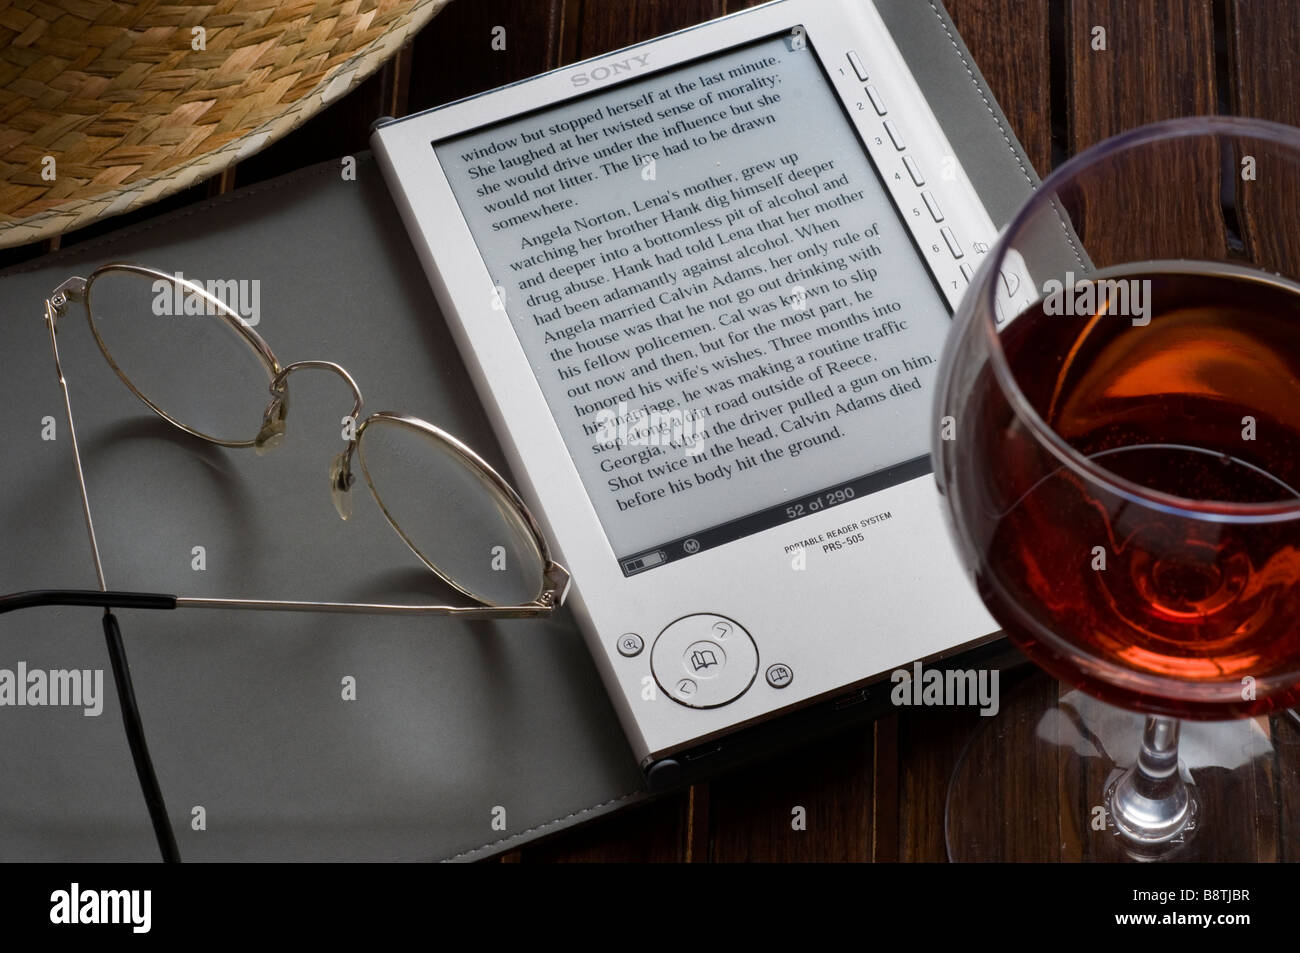 Sony eReader, an electronic portable book reading device on terrace table, with glass of wine straw hat and reading - Stock Image